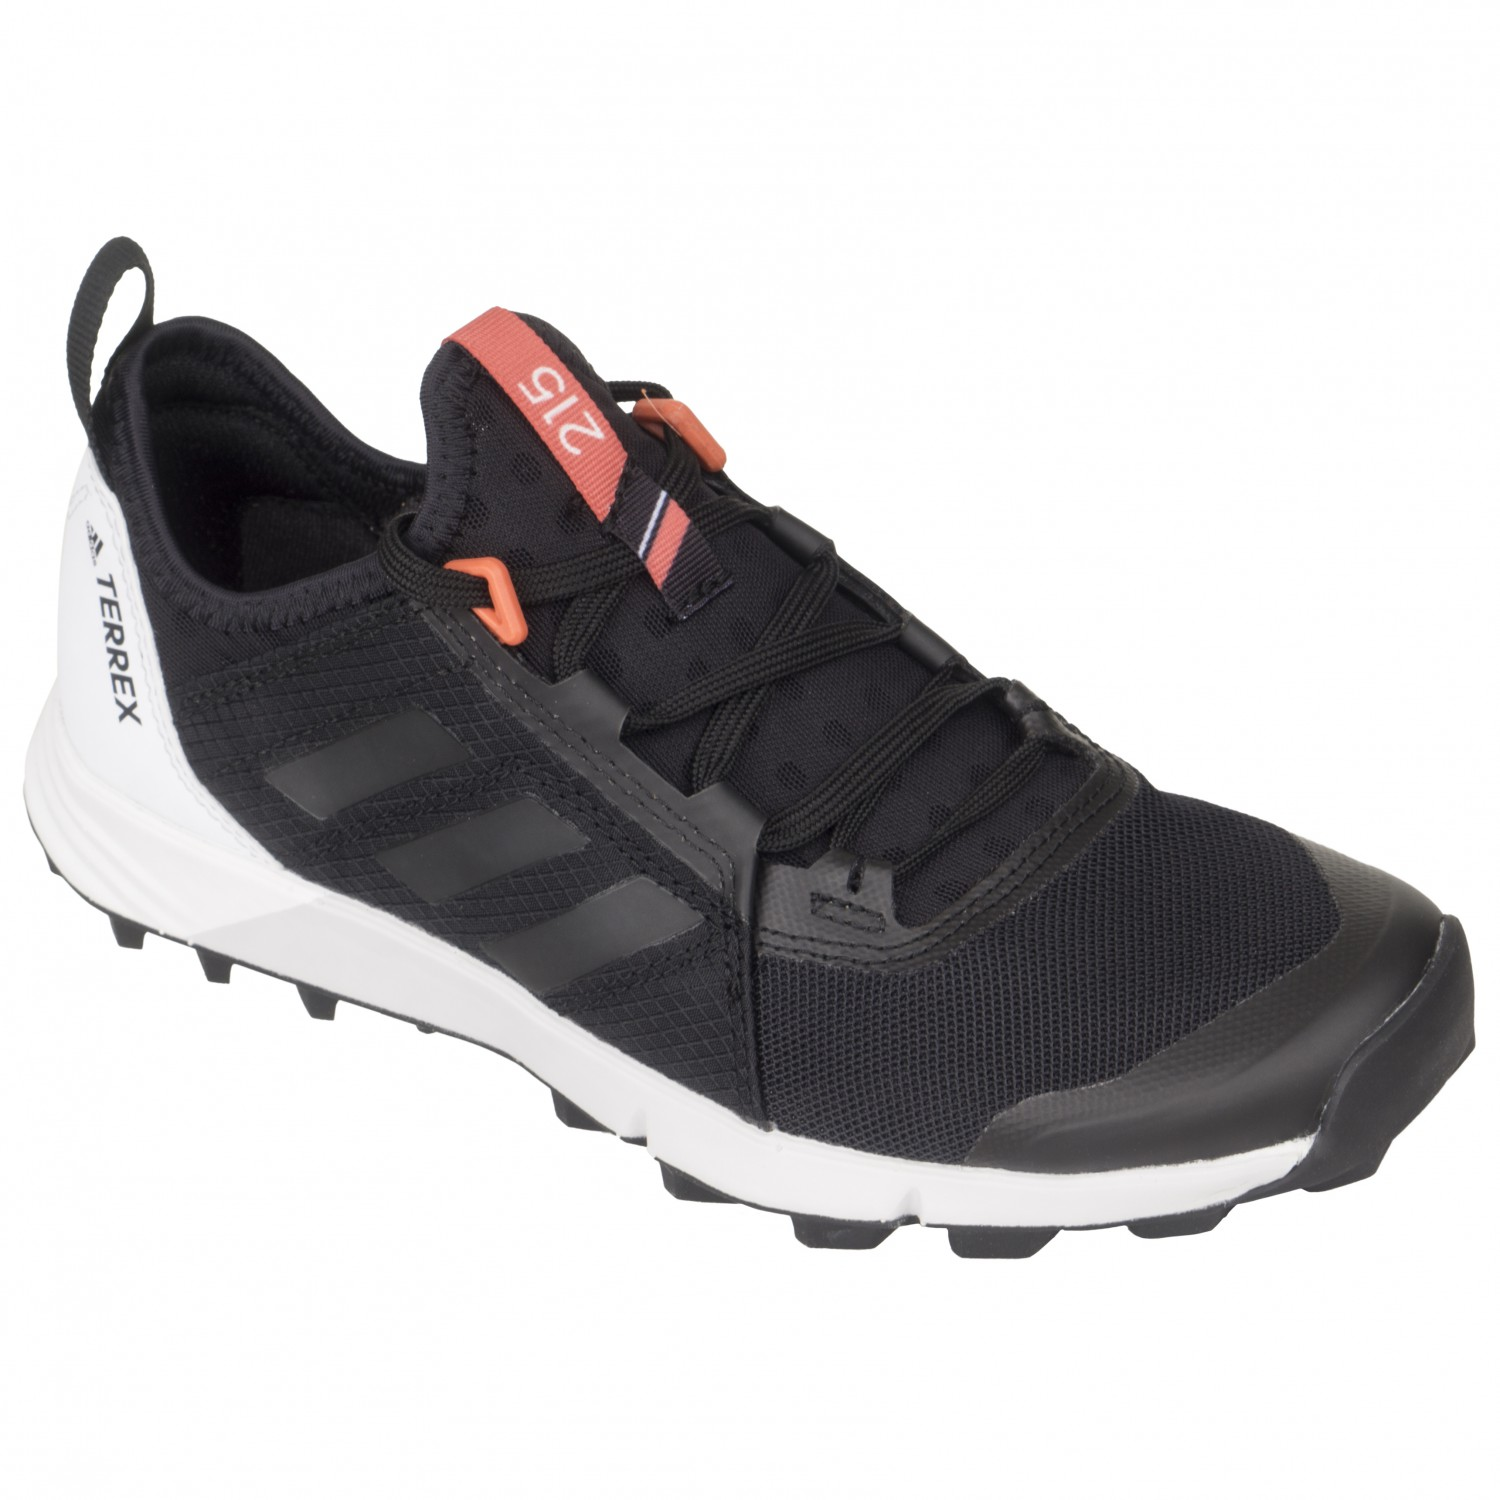 Llave Pegajoso dólar estadounidense  Adidas Terrex Agravic Speed - Trail running shoes Women's | Buy online |  Bergfreunde.eu